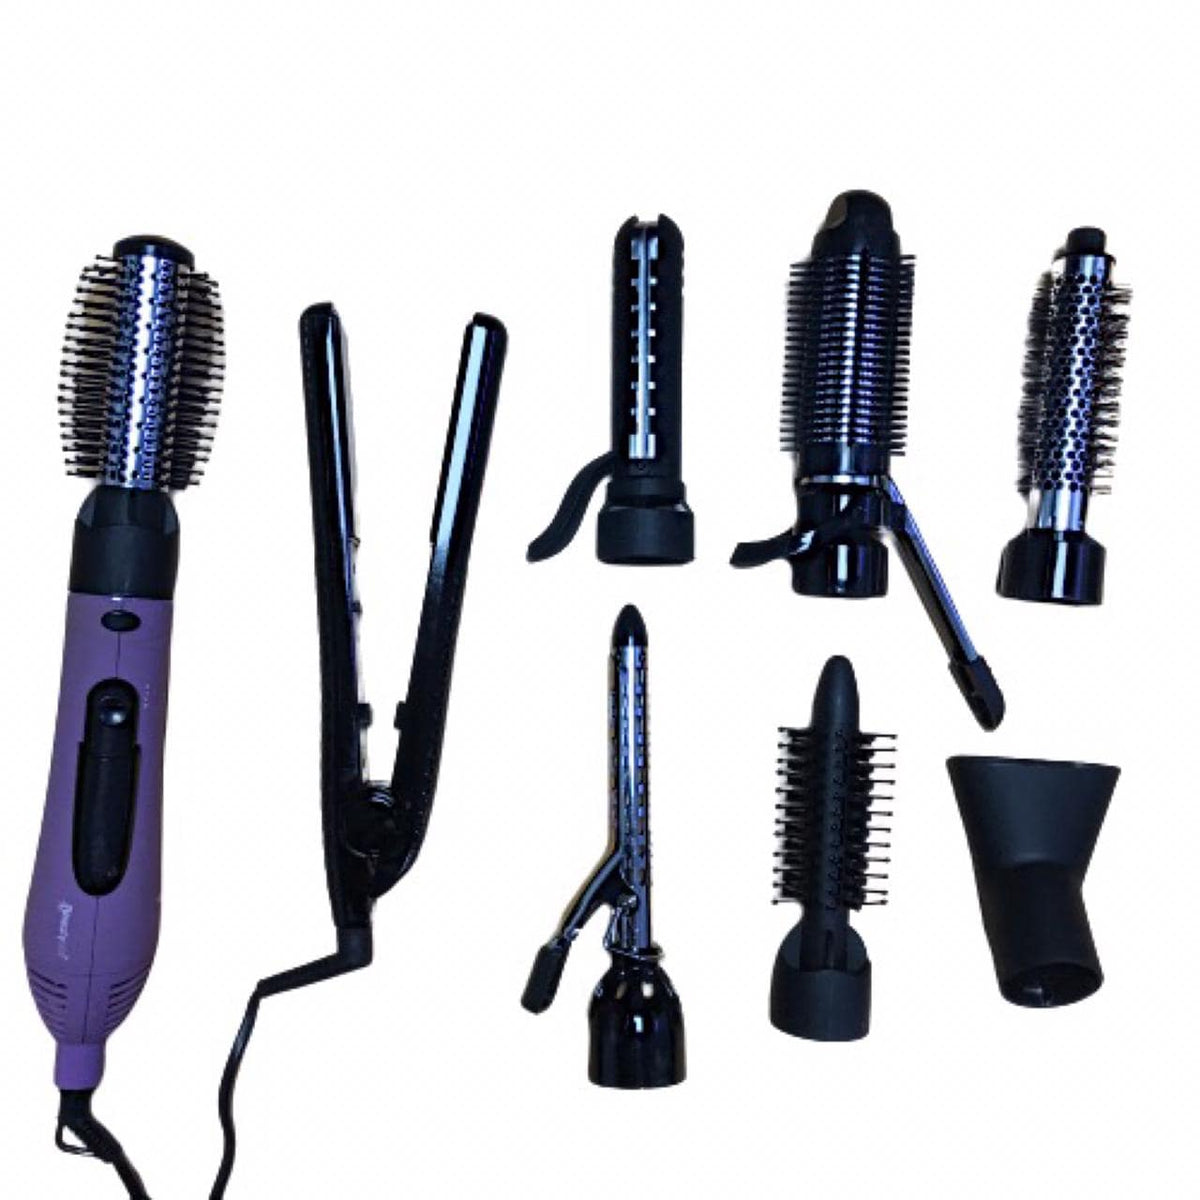 Beautystar 10 in 1 Hair Care Set - BS1595